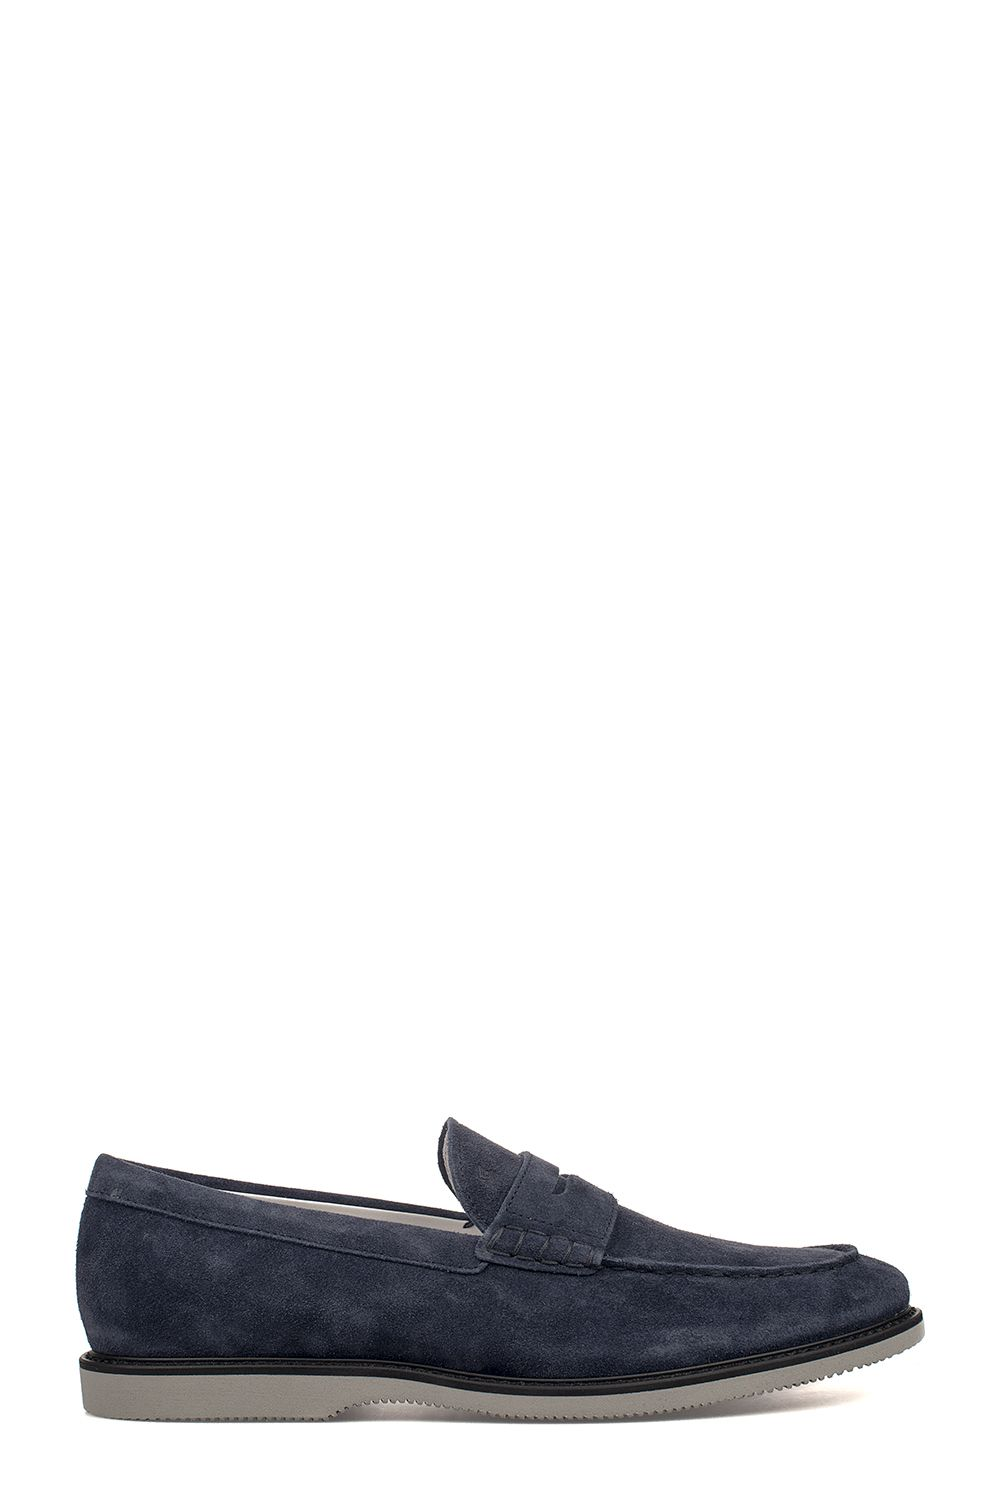 Blue Club Guardolo Suede Loafer